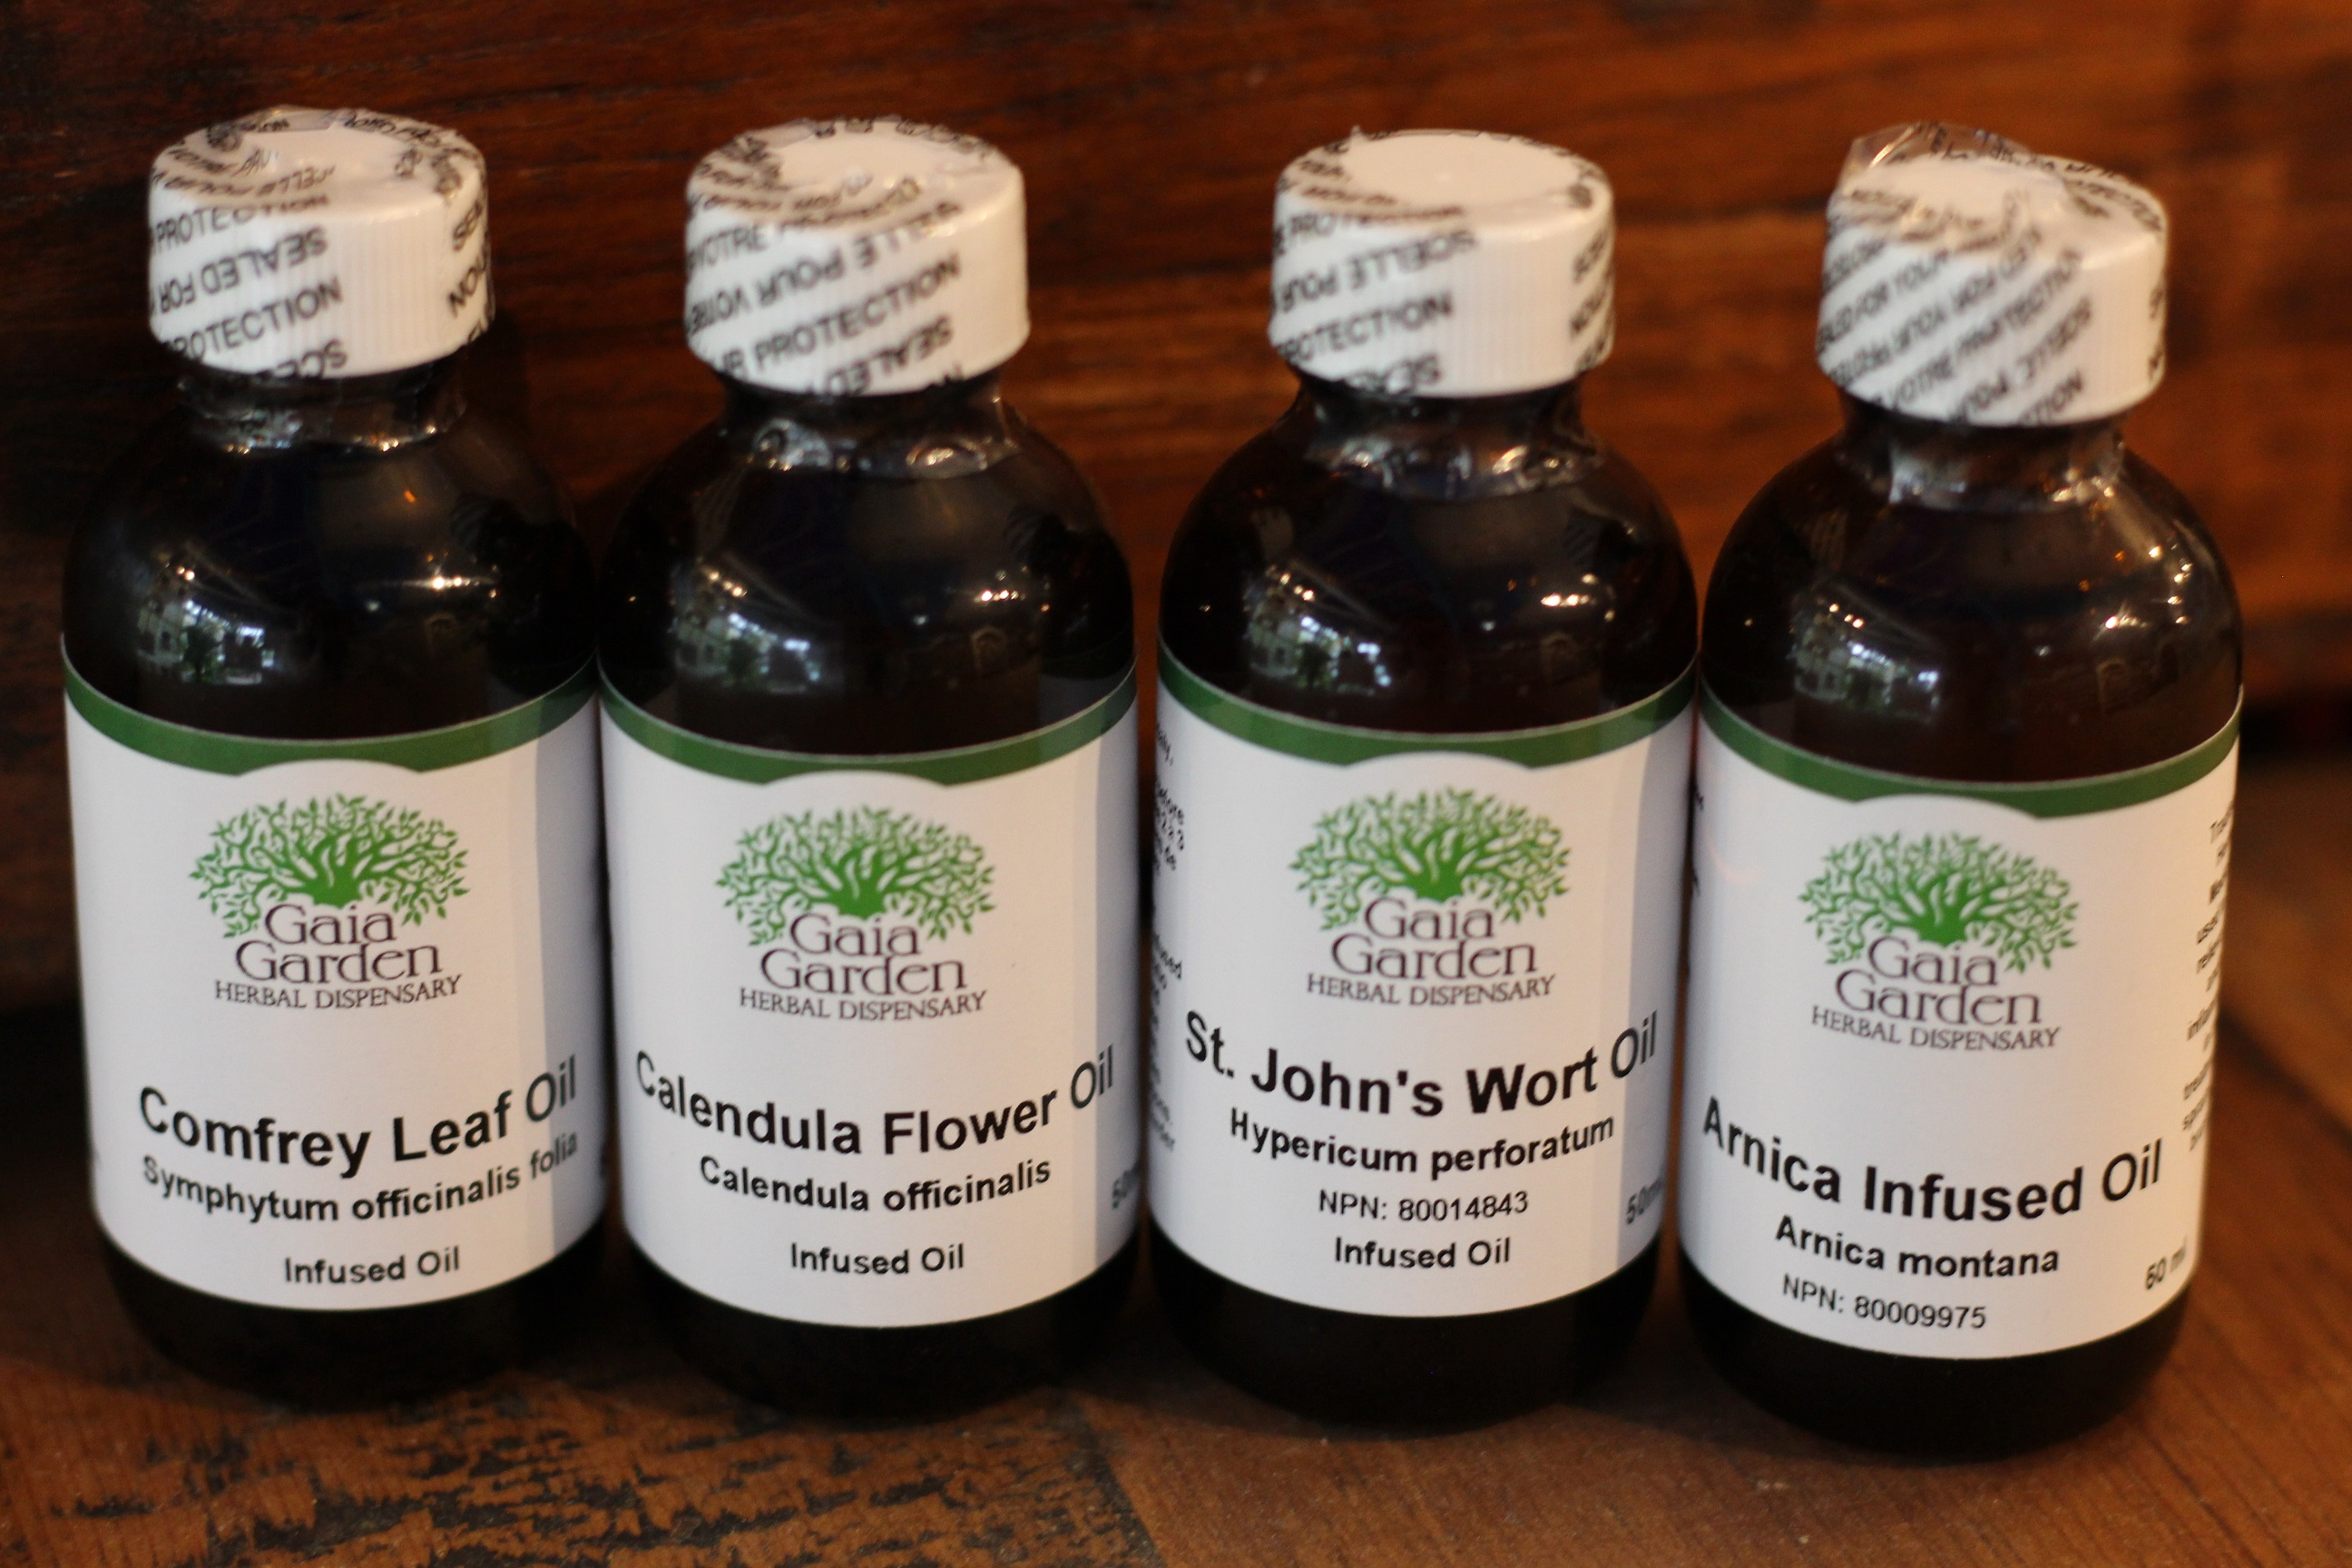 Comfrey - Infused Oil